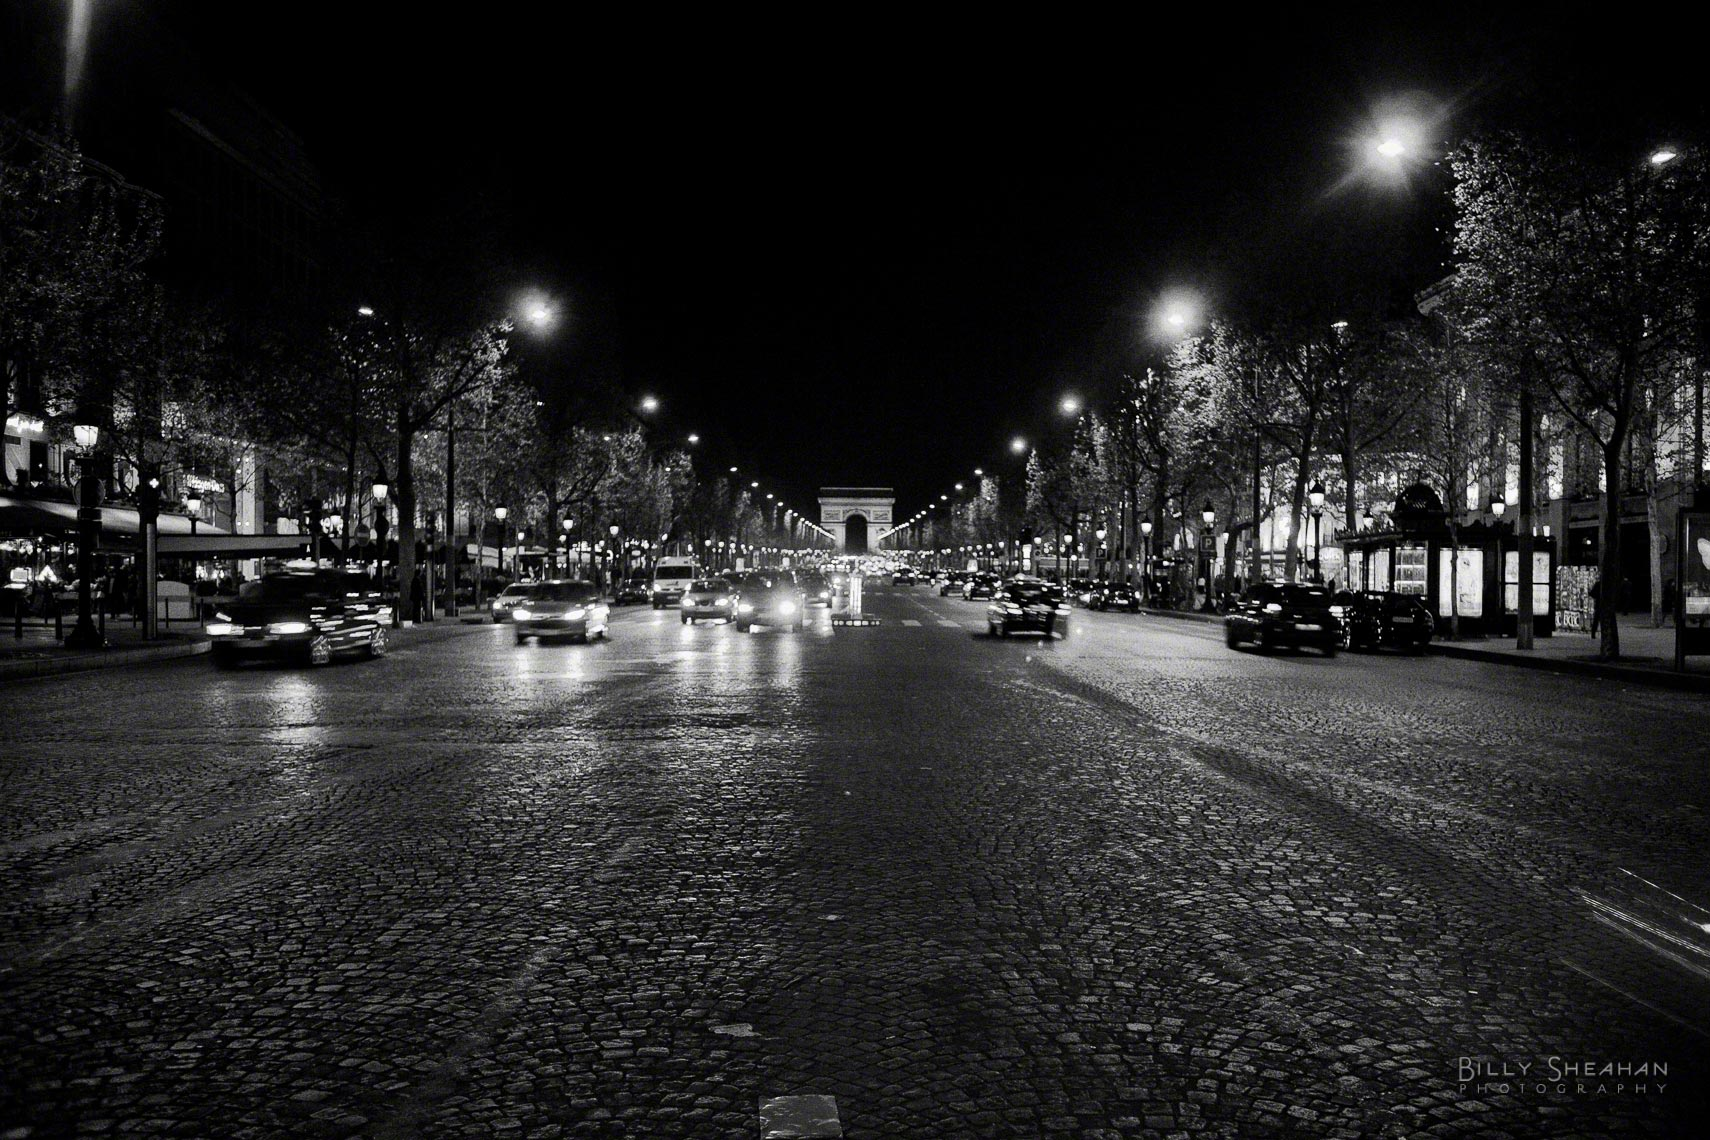 Avenue_des_Champs_Elysees_Arc_de_Triomphe_Night_Paris2008_24Apr2008_0565_BW_D.jpg